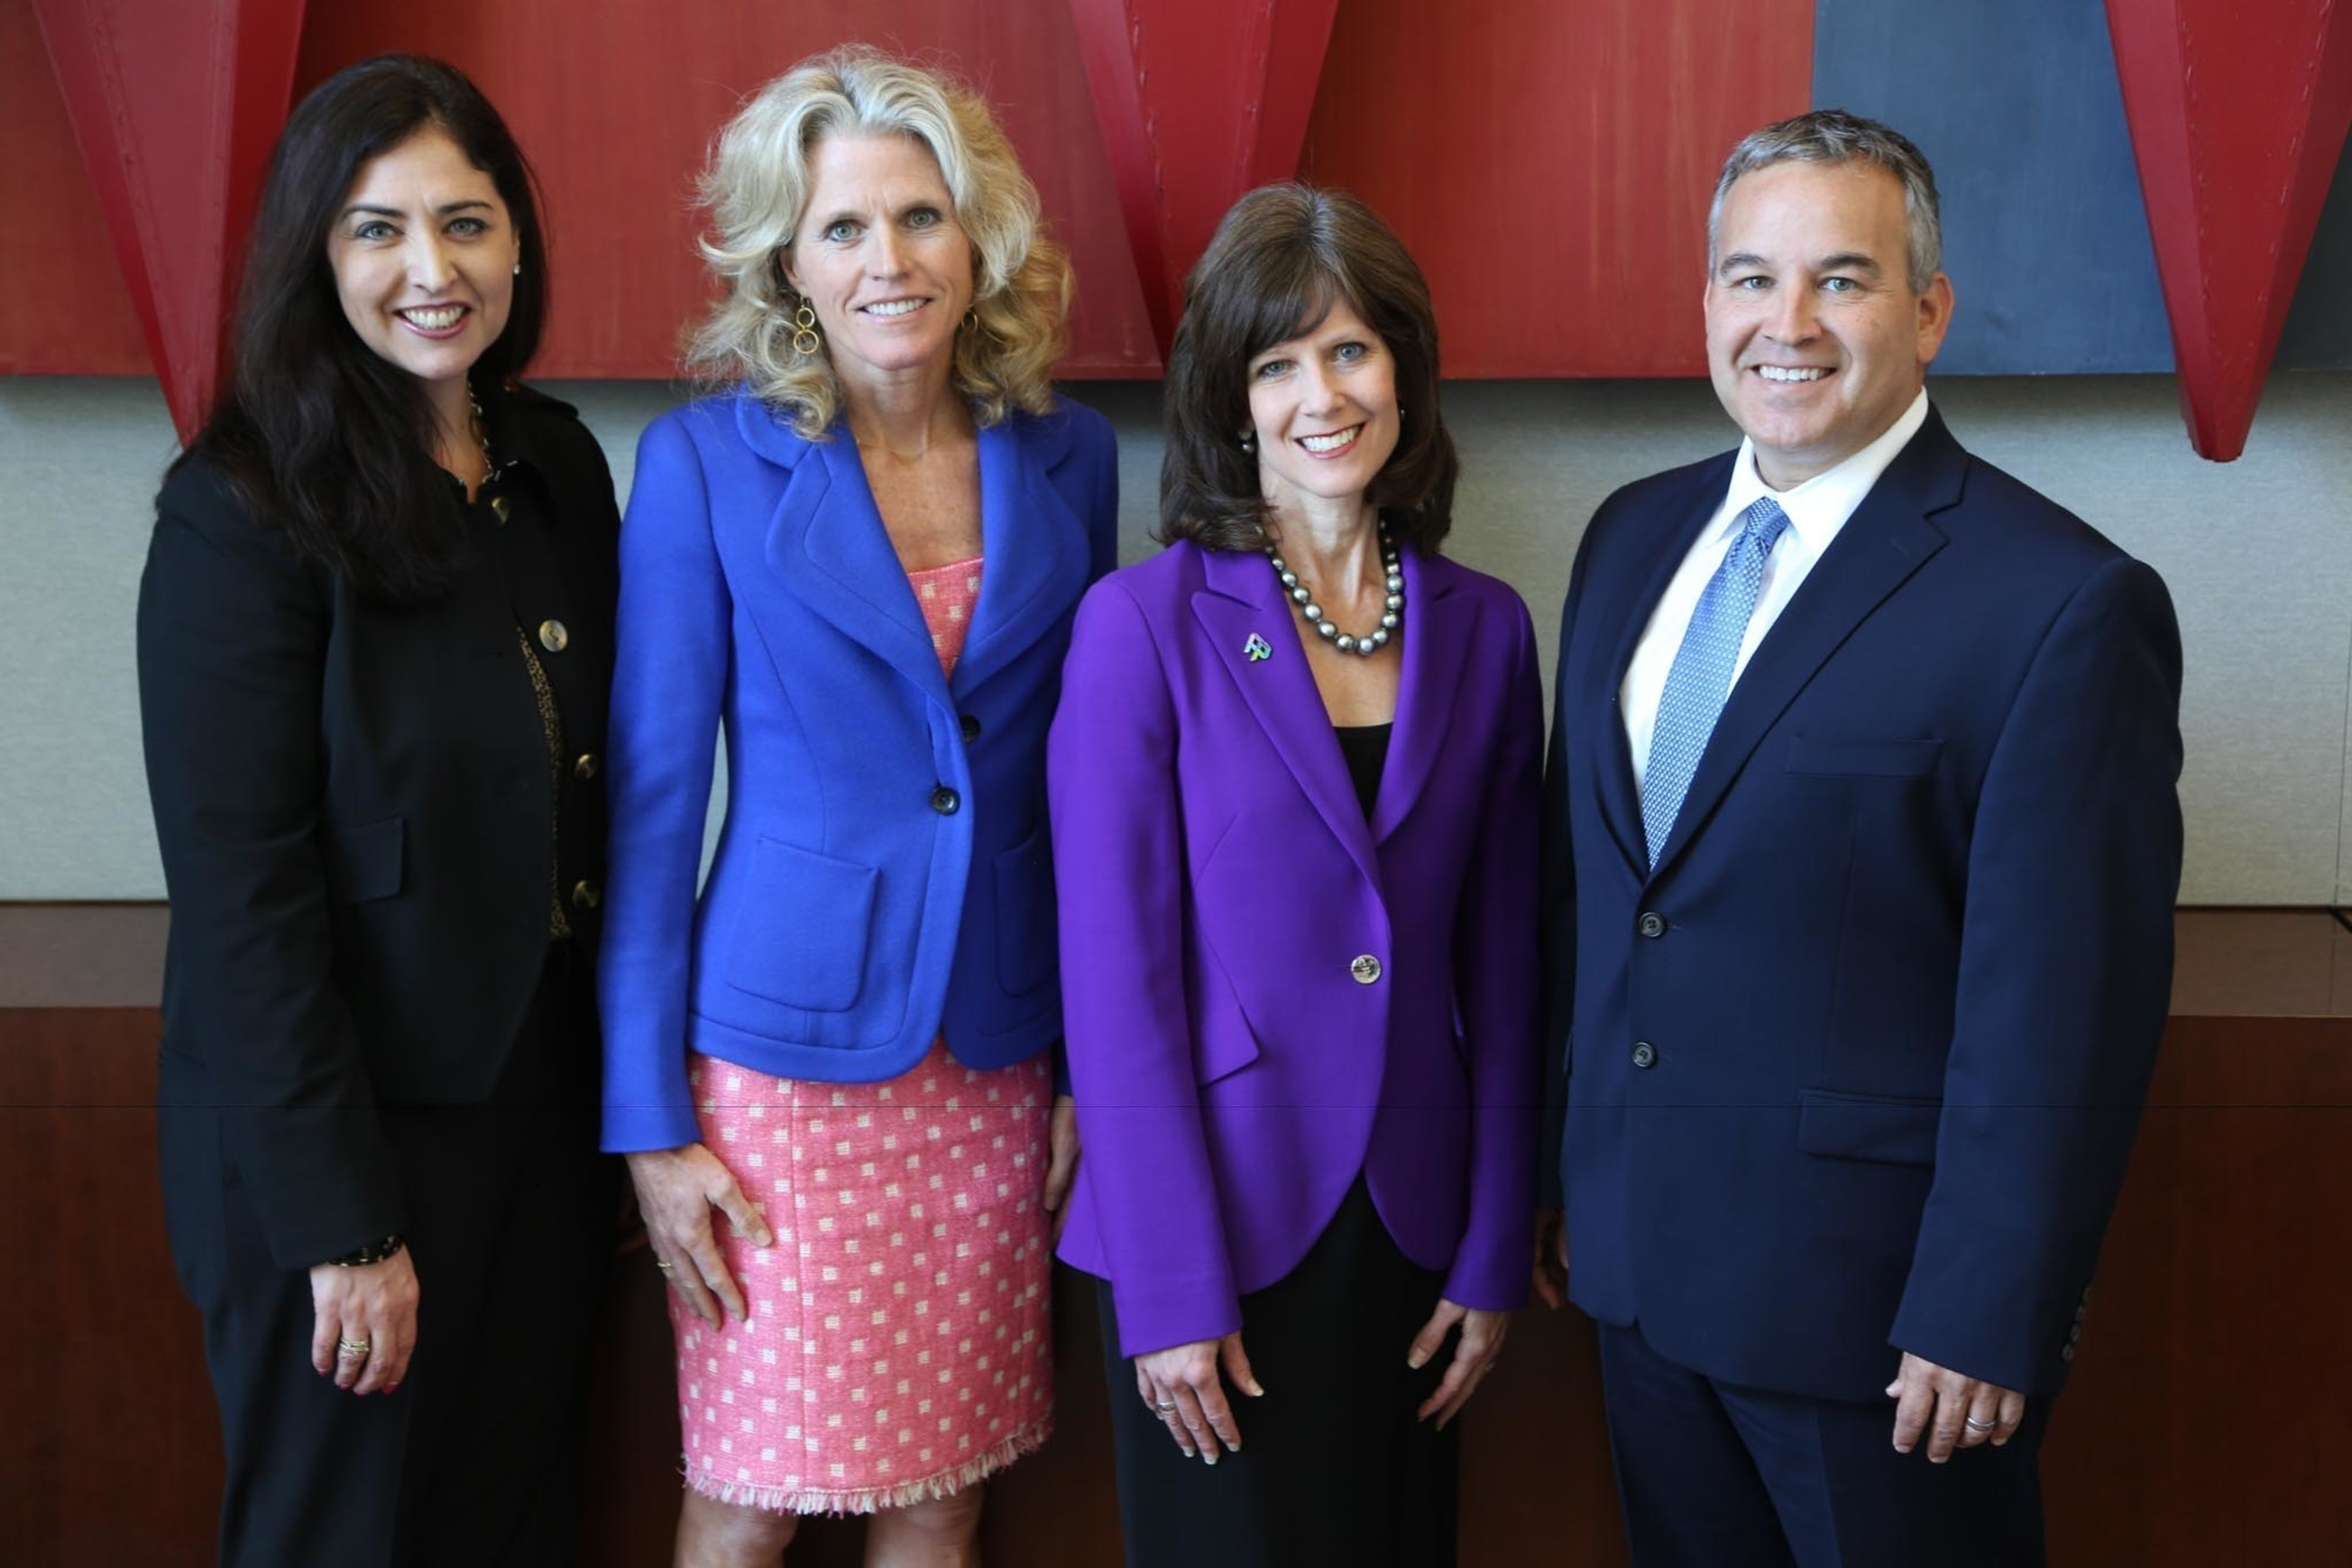 AMN Healthcare corporate governance leaders (L to R): Whitney Laughlin, Deputy General Counsel; Denise Jackson, General Counsel; Susan Salka, President & CEO; and Louis Alonso, Senior Corporate Counsel